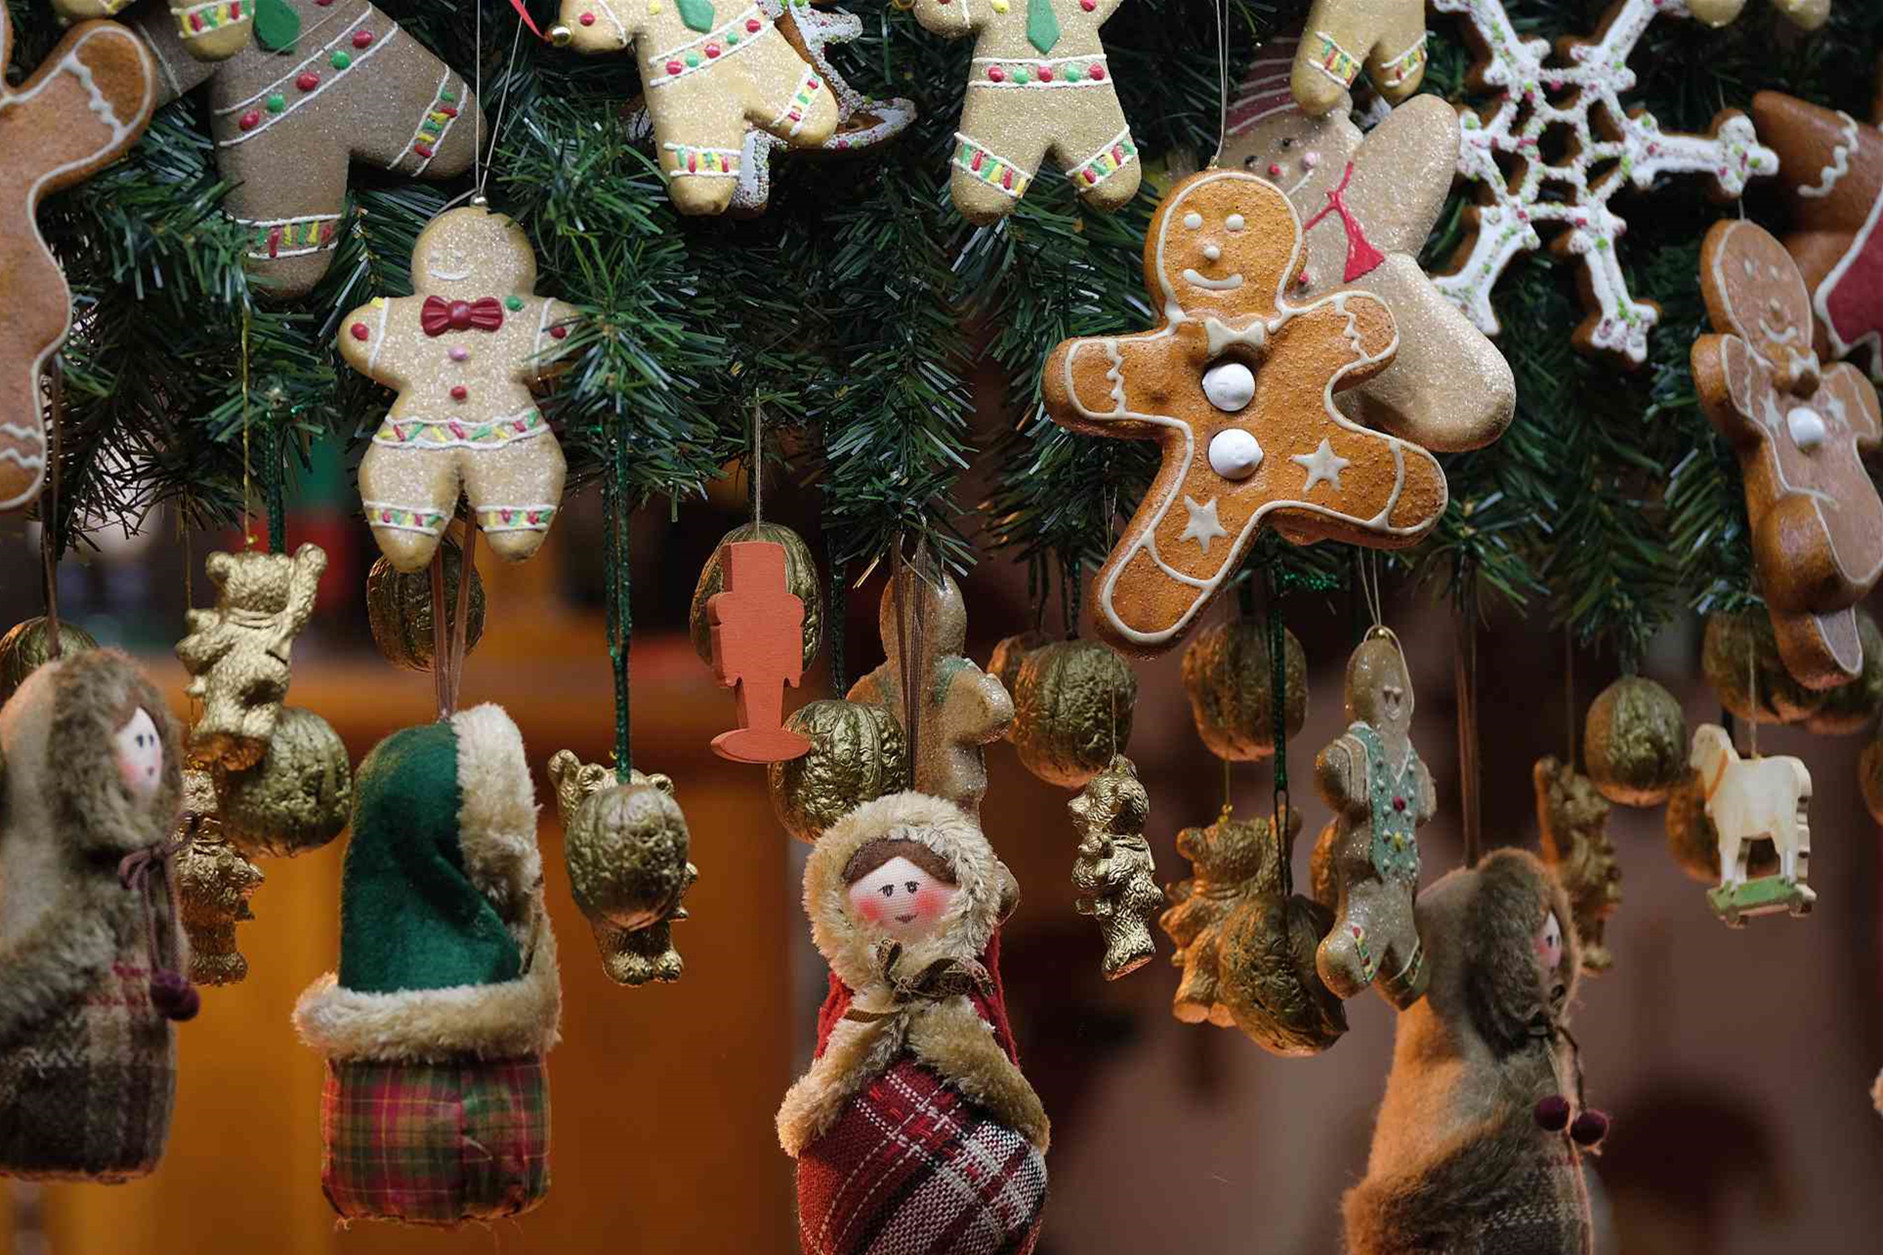 The annual Christmas market was held in Germany